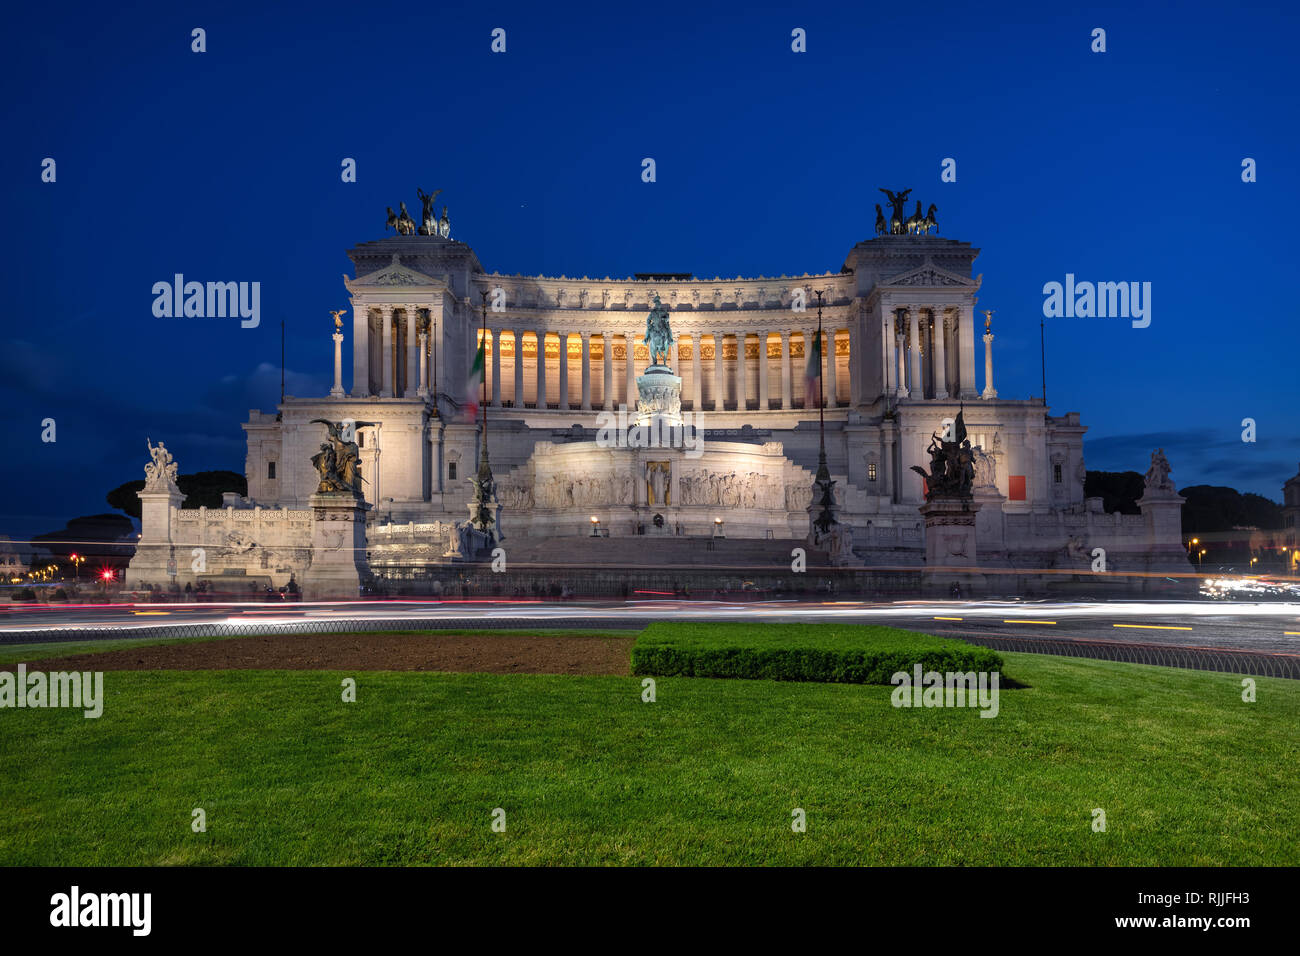 Rome, Italy at dusk. Altare della Patria (Altar of the Fatherland),  also known as the National Monument to Victor Emmanuel II - Stock Image